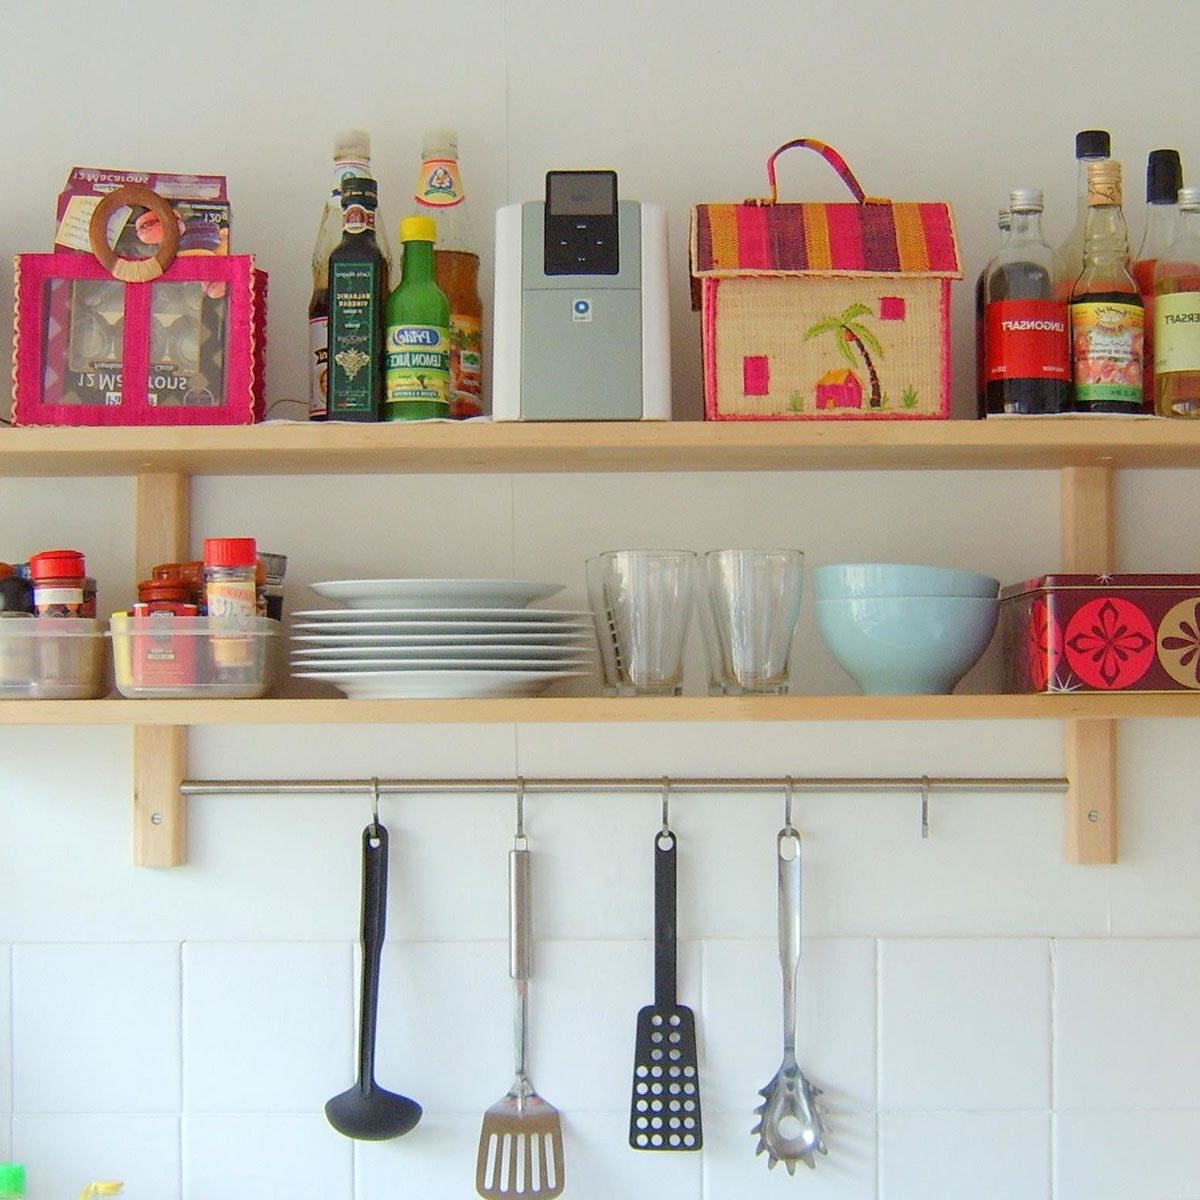 Stupendous 11 Ideas For Organizing Your Kitchen The Family Handyman Download Free Architecture Designs Intelgarnamadebymaigaardcom